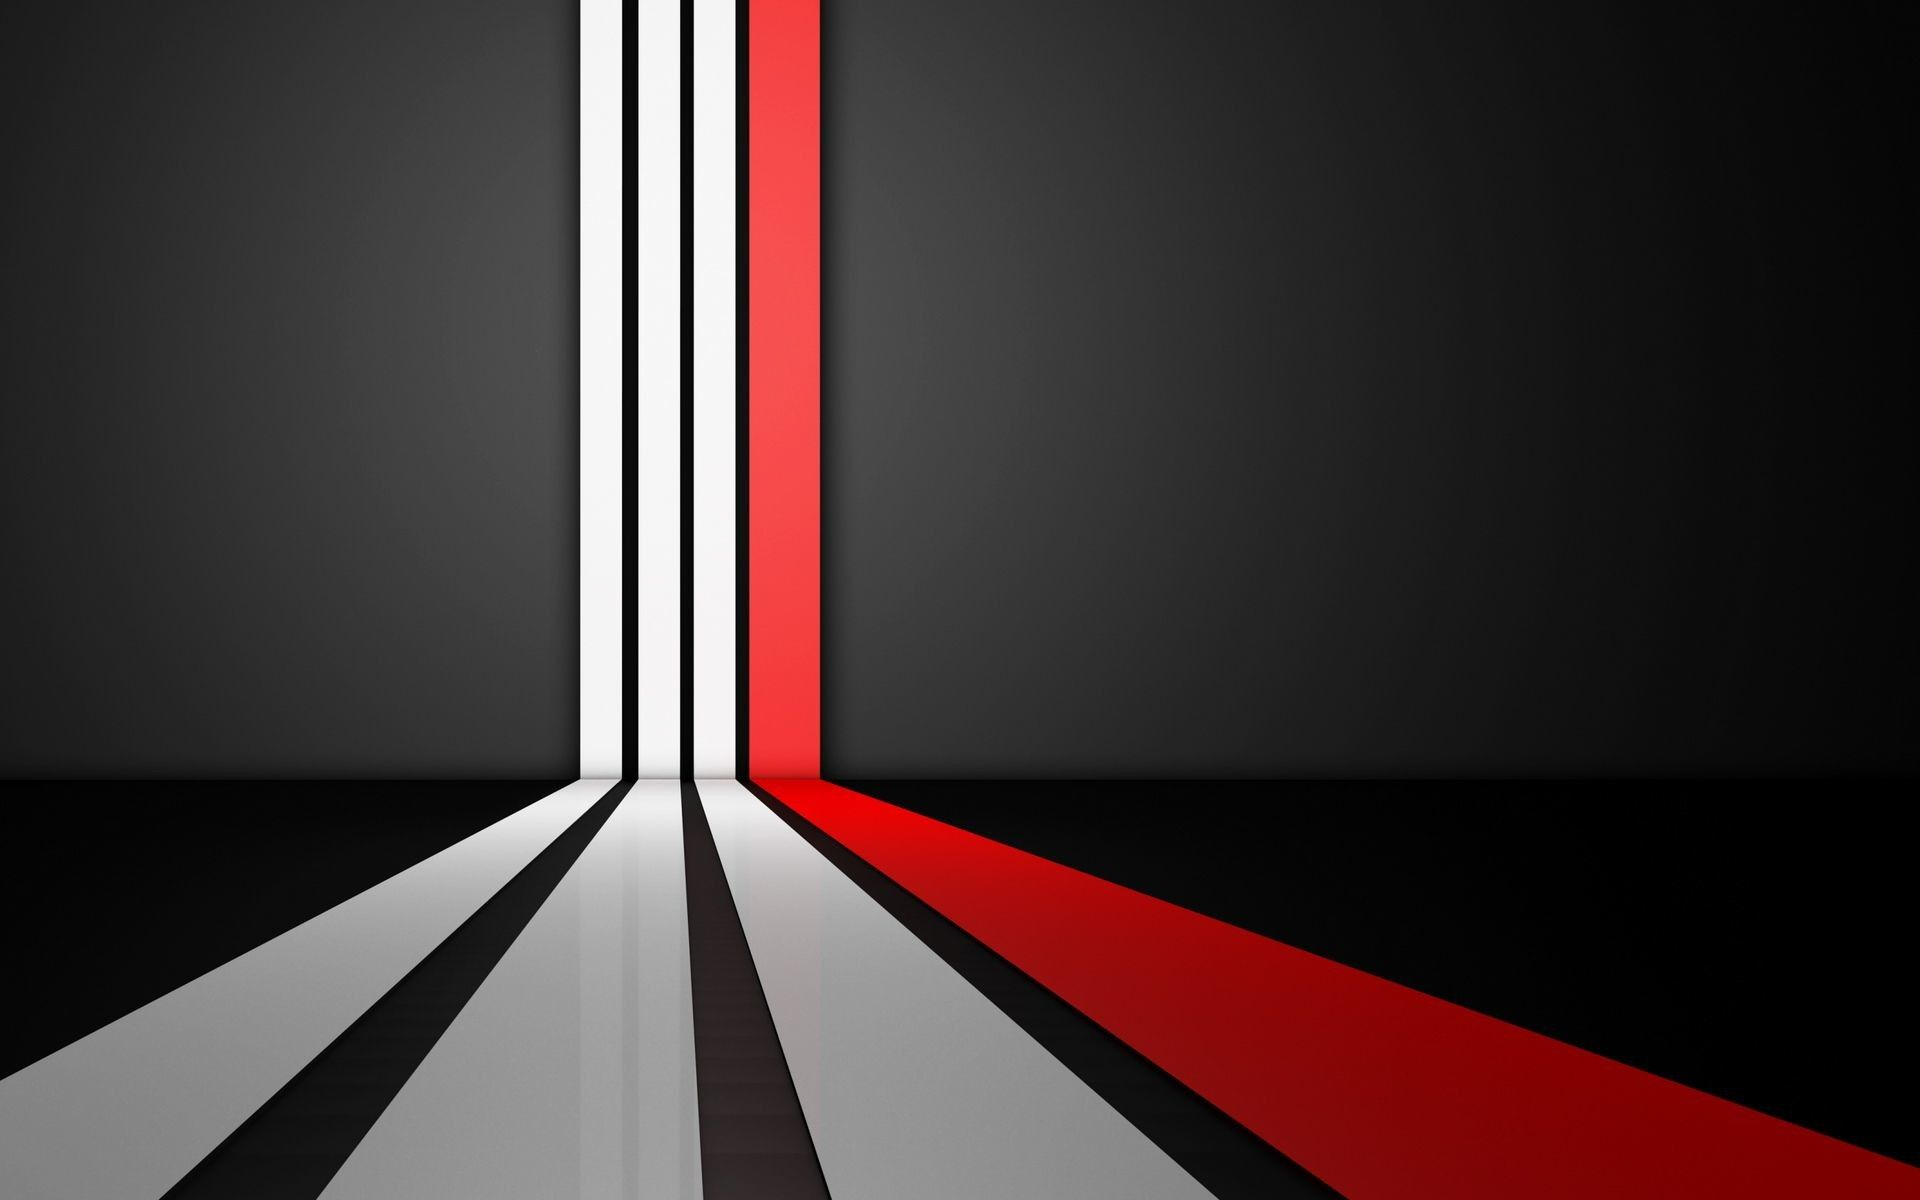 Red White And Black Abstract Wallpapers Top Free Red White And